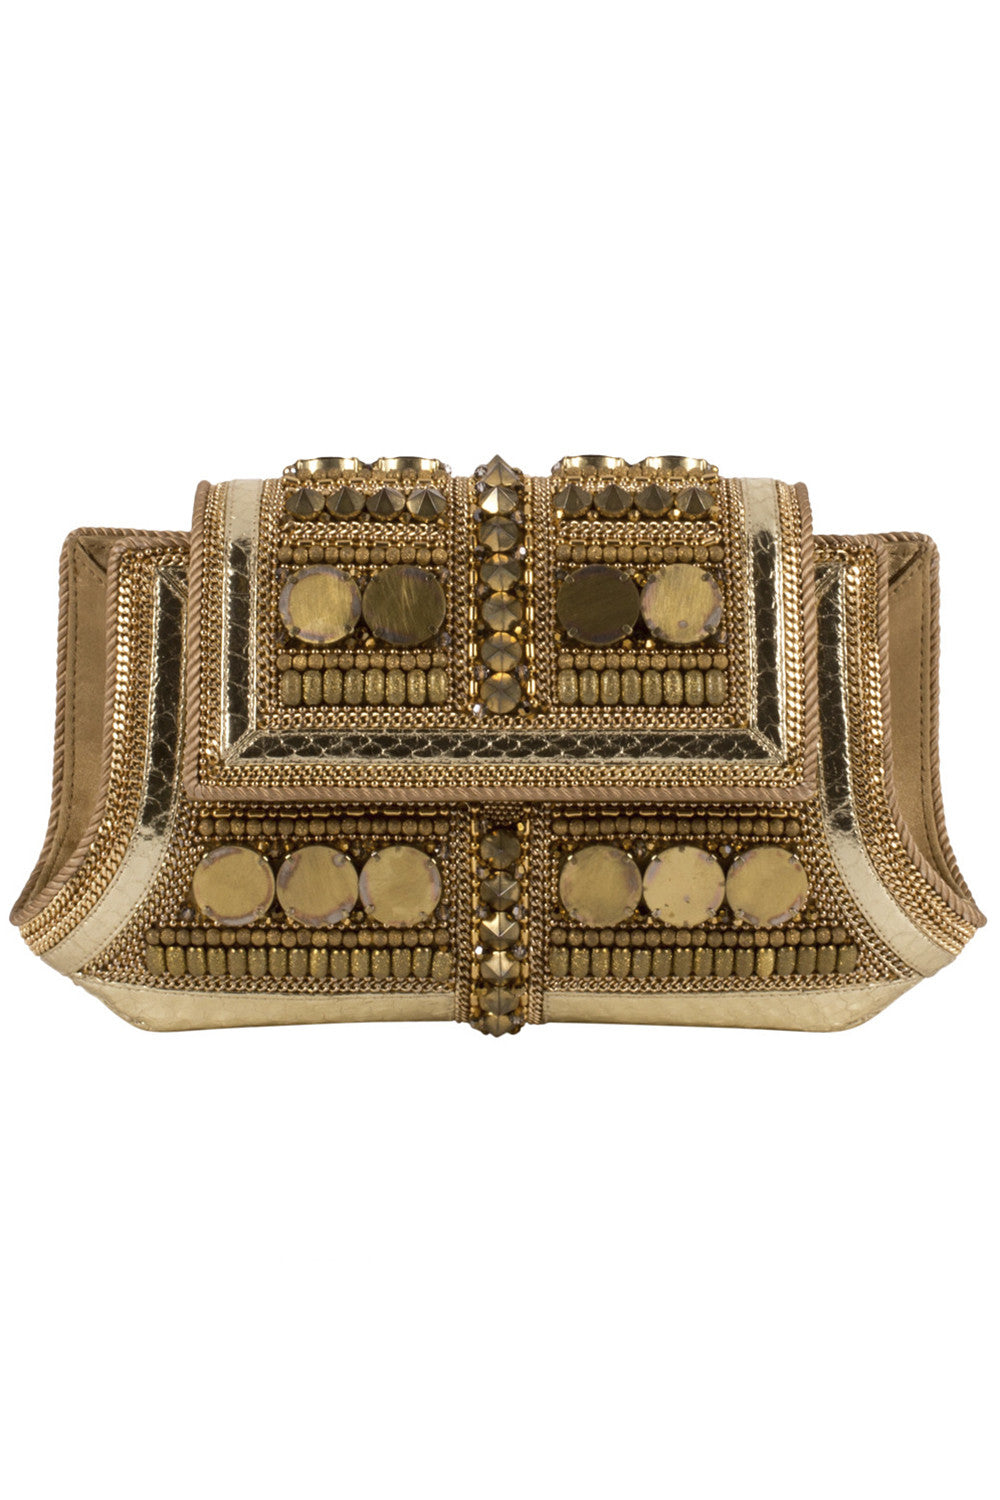 KIDLAT 2.0 Clutch in Gold